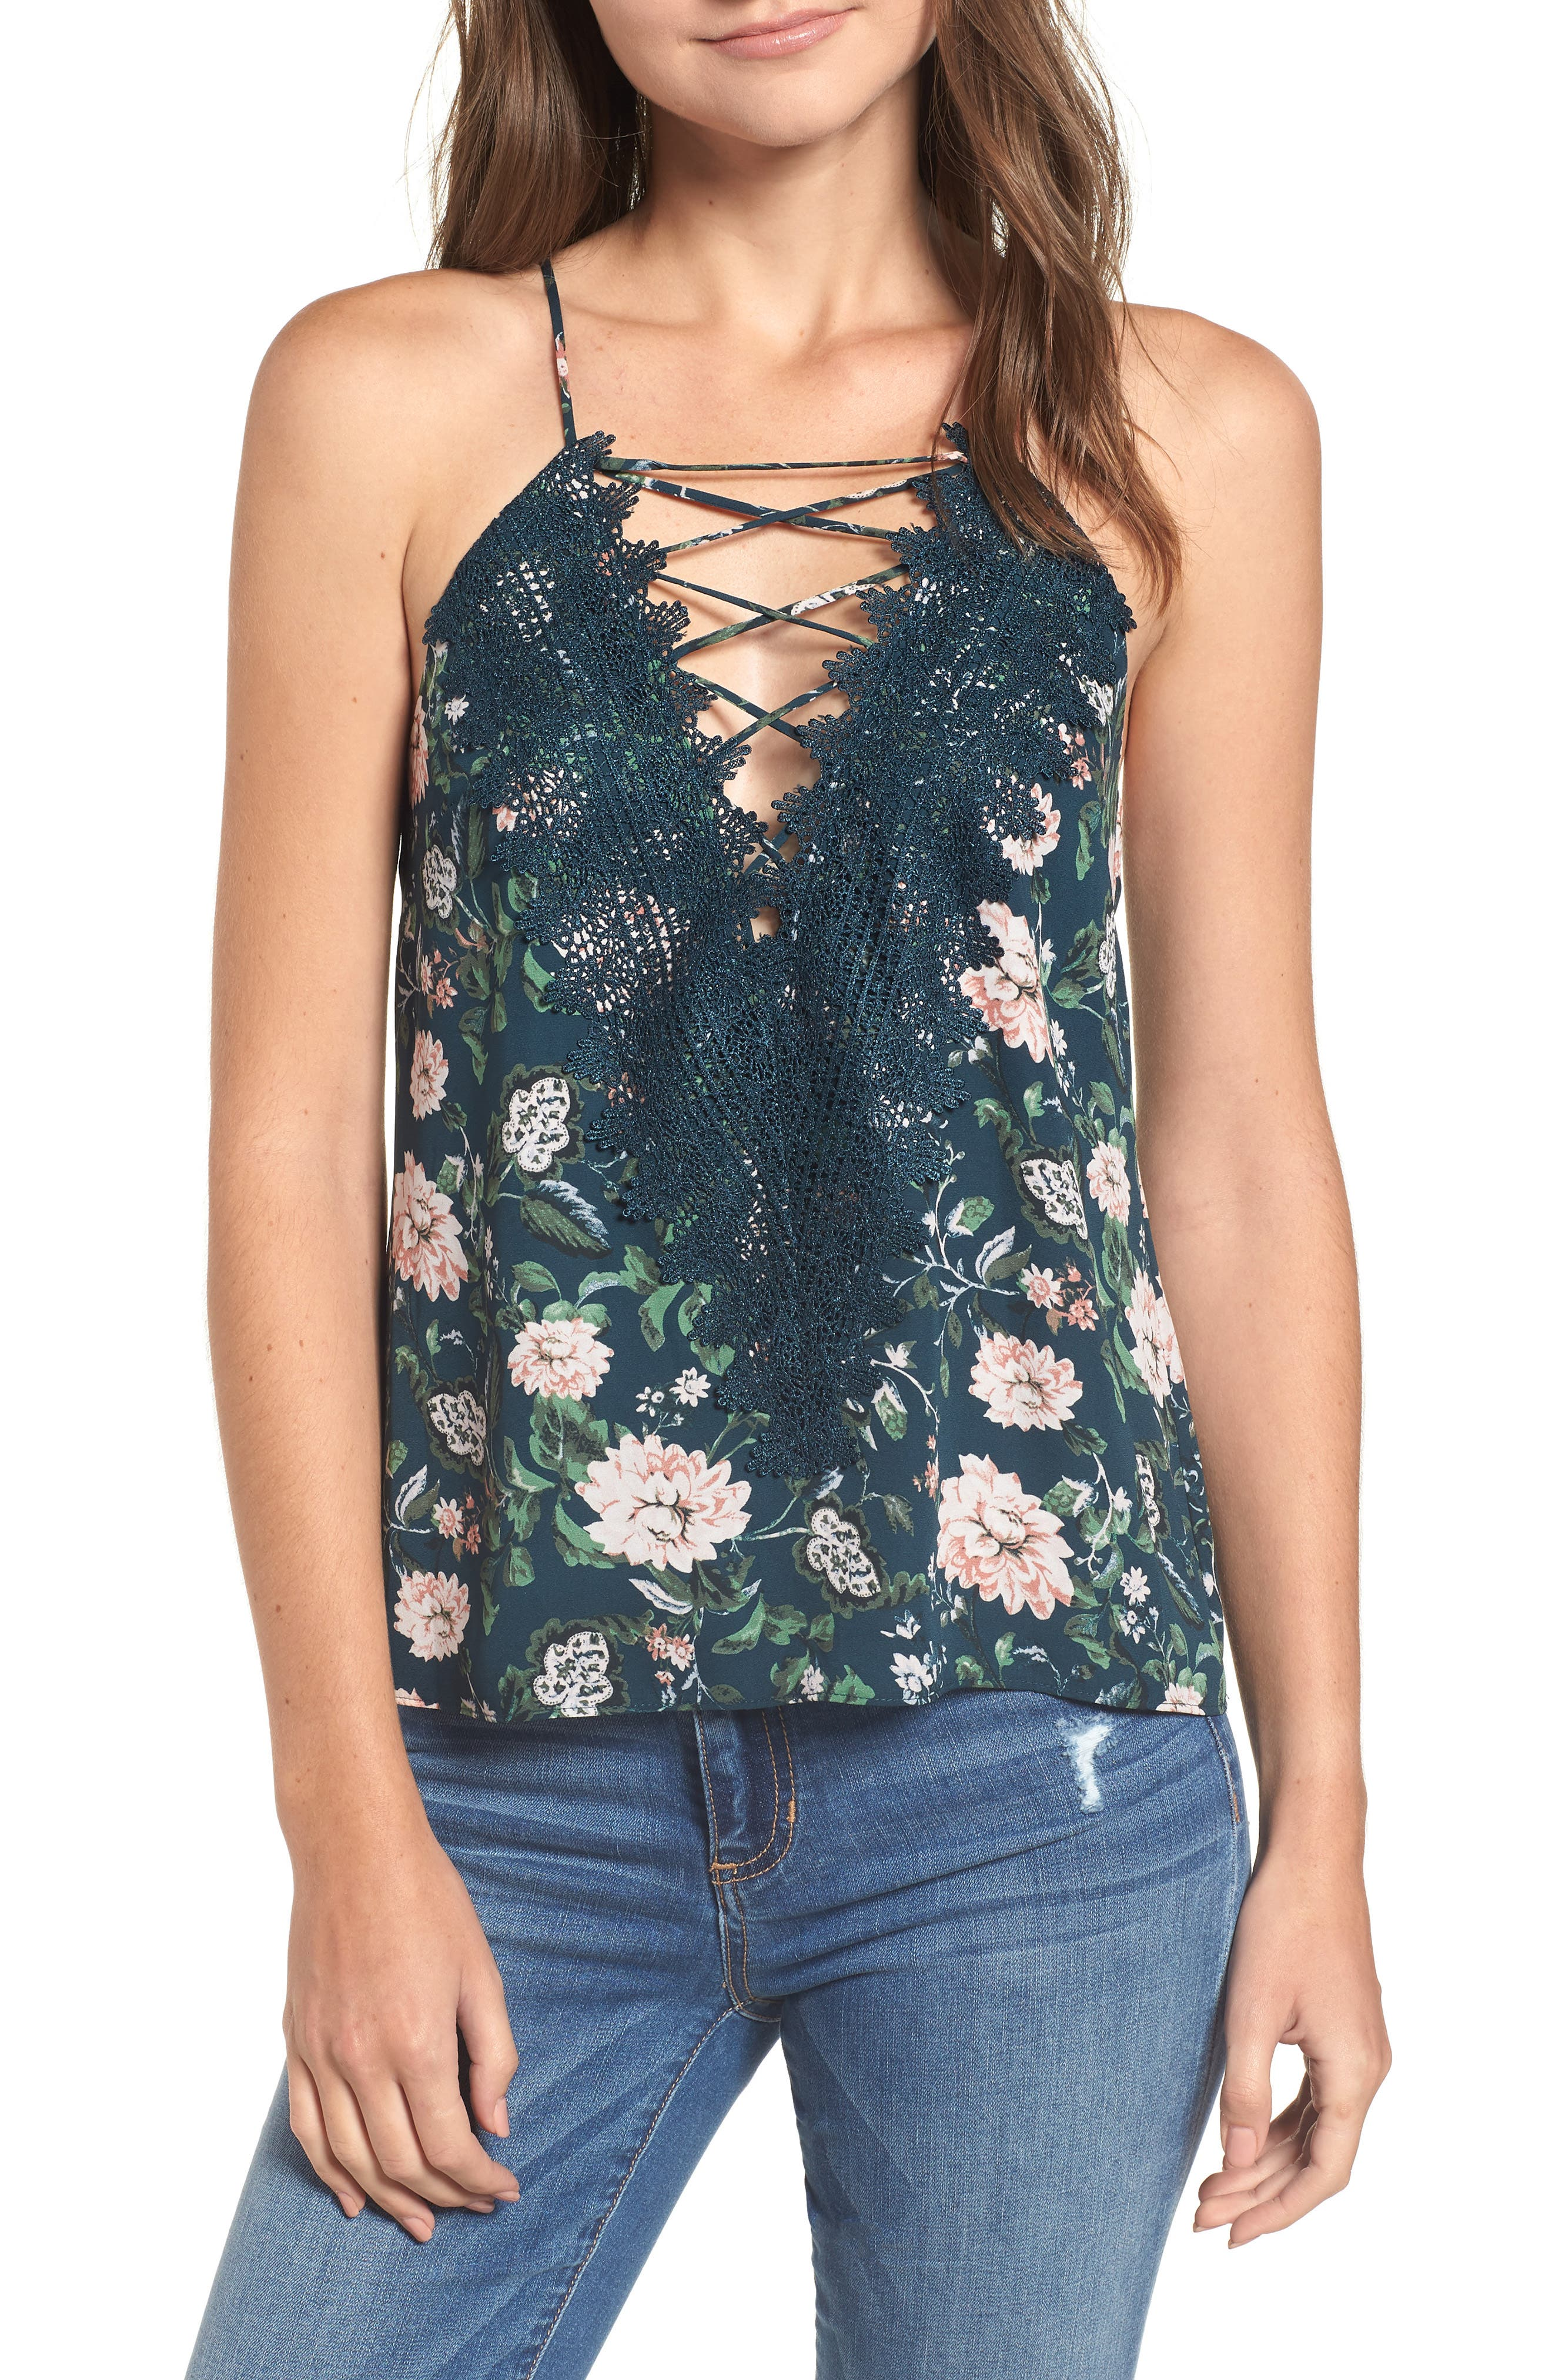 Posie Strappy Camisole,                         Main,                         color, DUSTY TEAL FLORAL